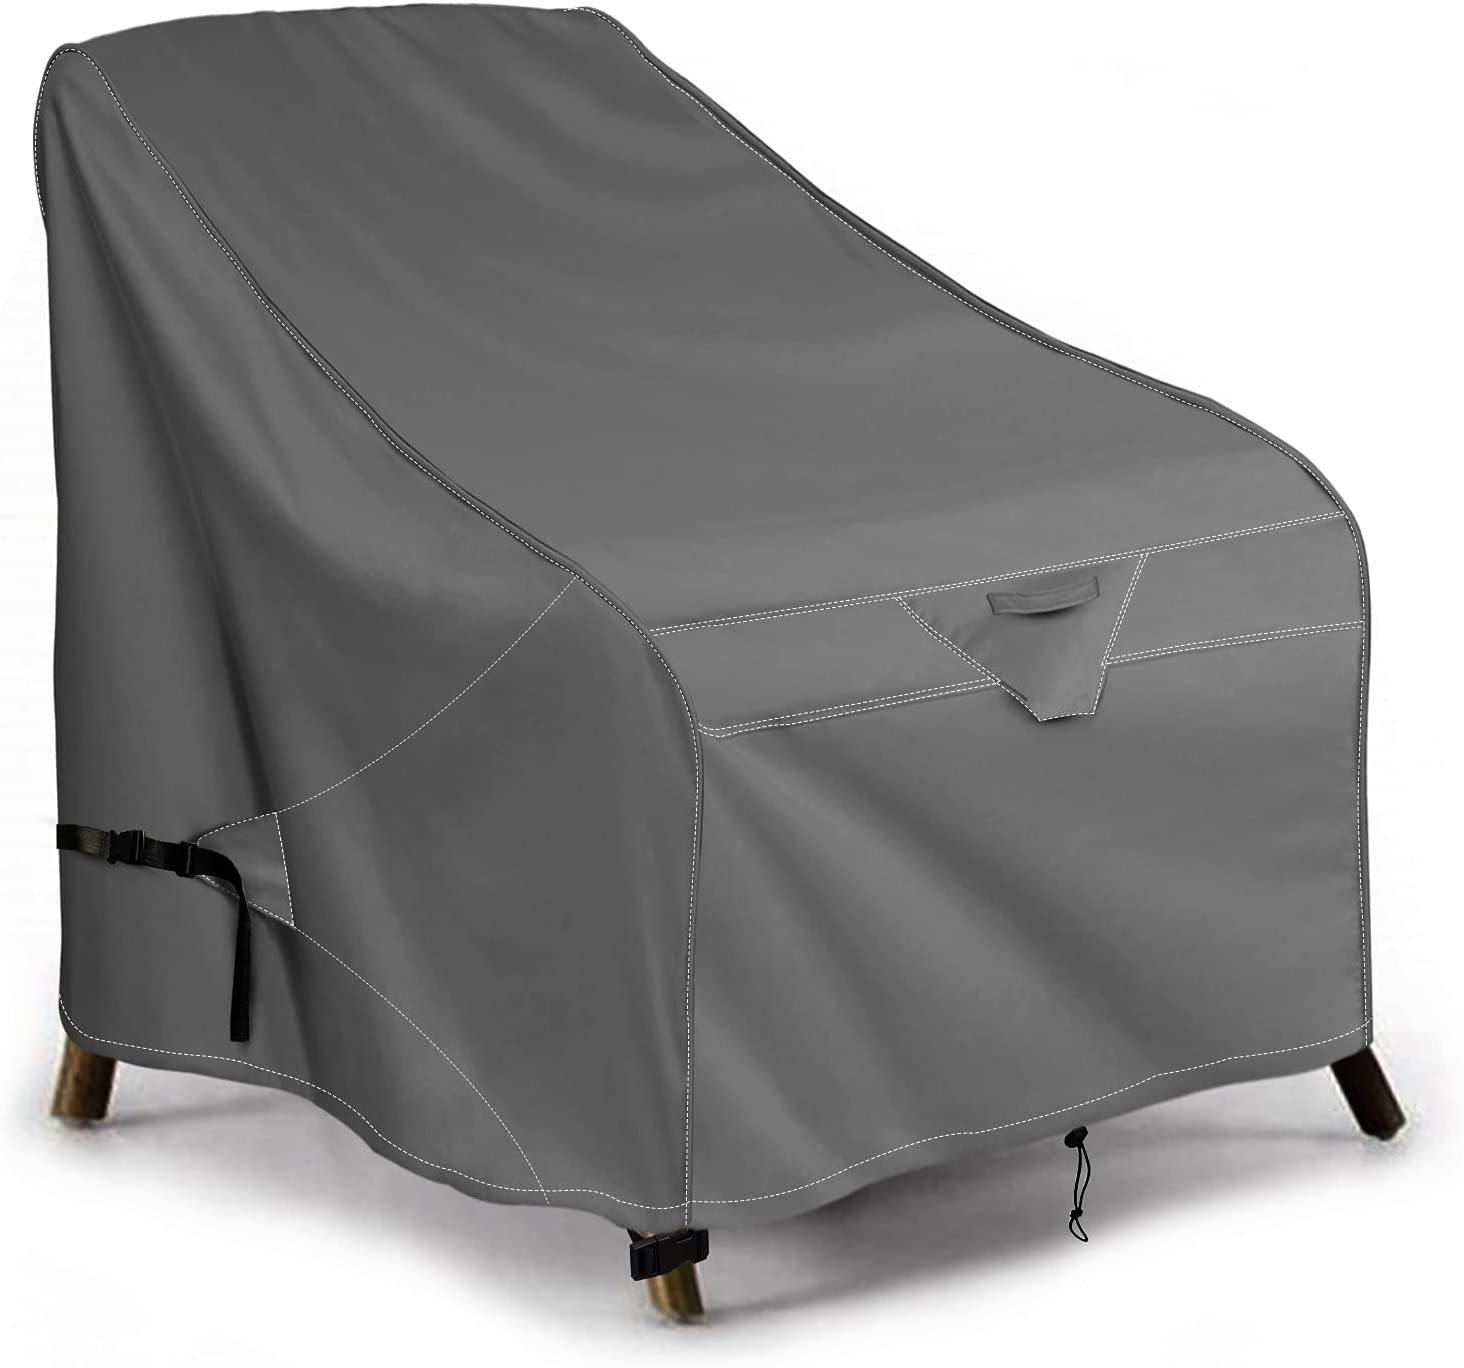 iKover Patio Chair Covers Lounge Max 81% OFF Deep Heavy Seat Duty Seattle Mall Cover an